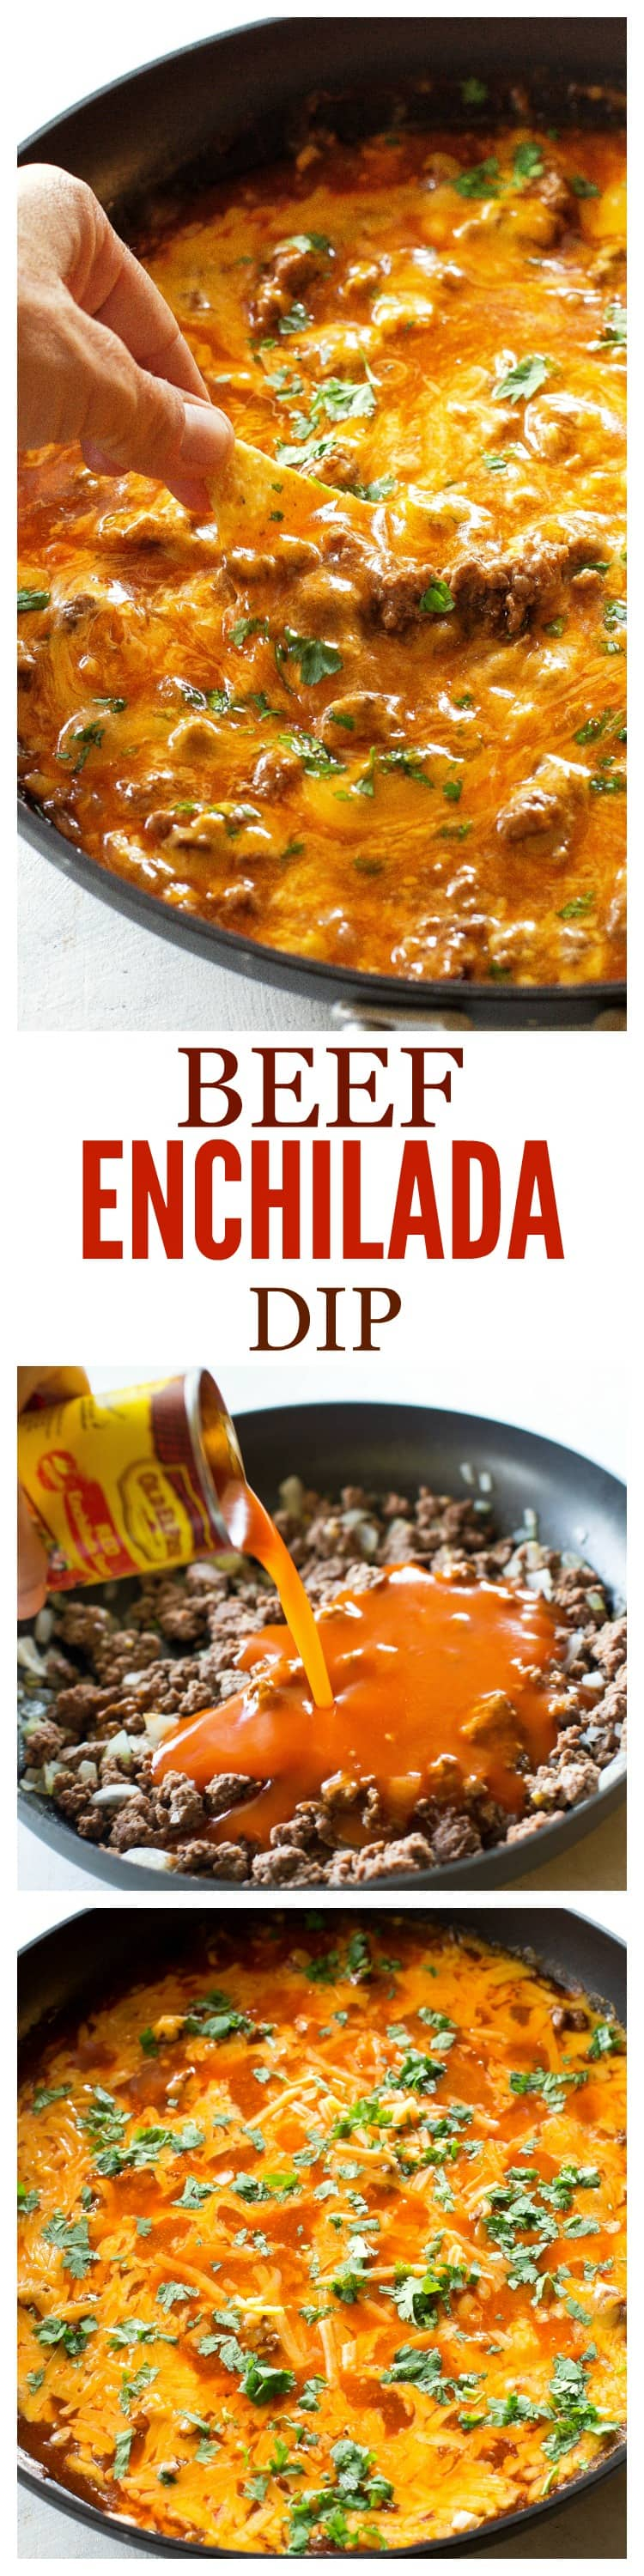 Beef Enchilada Dip - so easy! Always a crowd pleaser! #cincodemayo #beef #appetizer #mexican